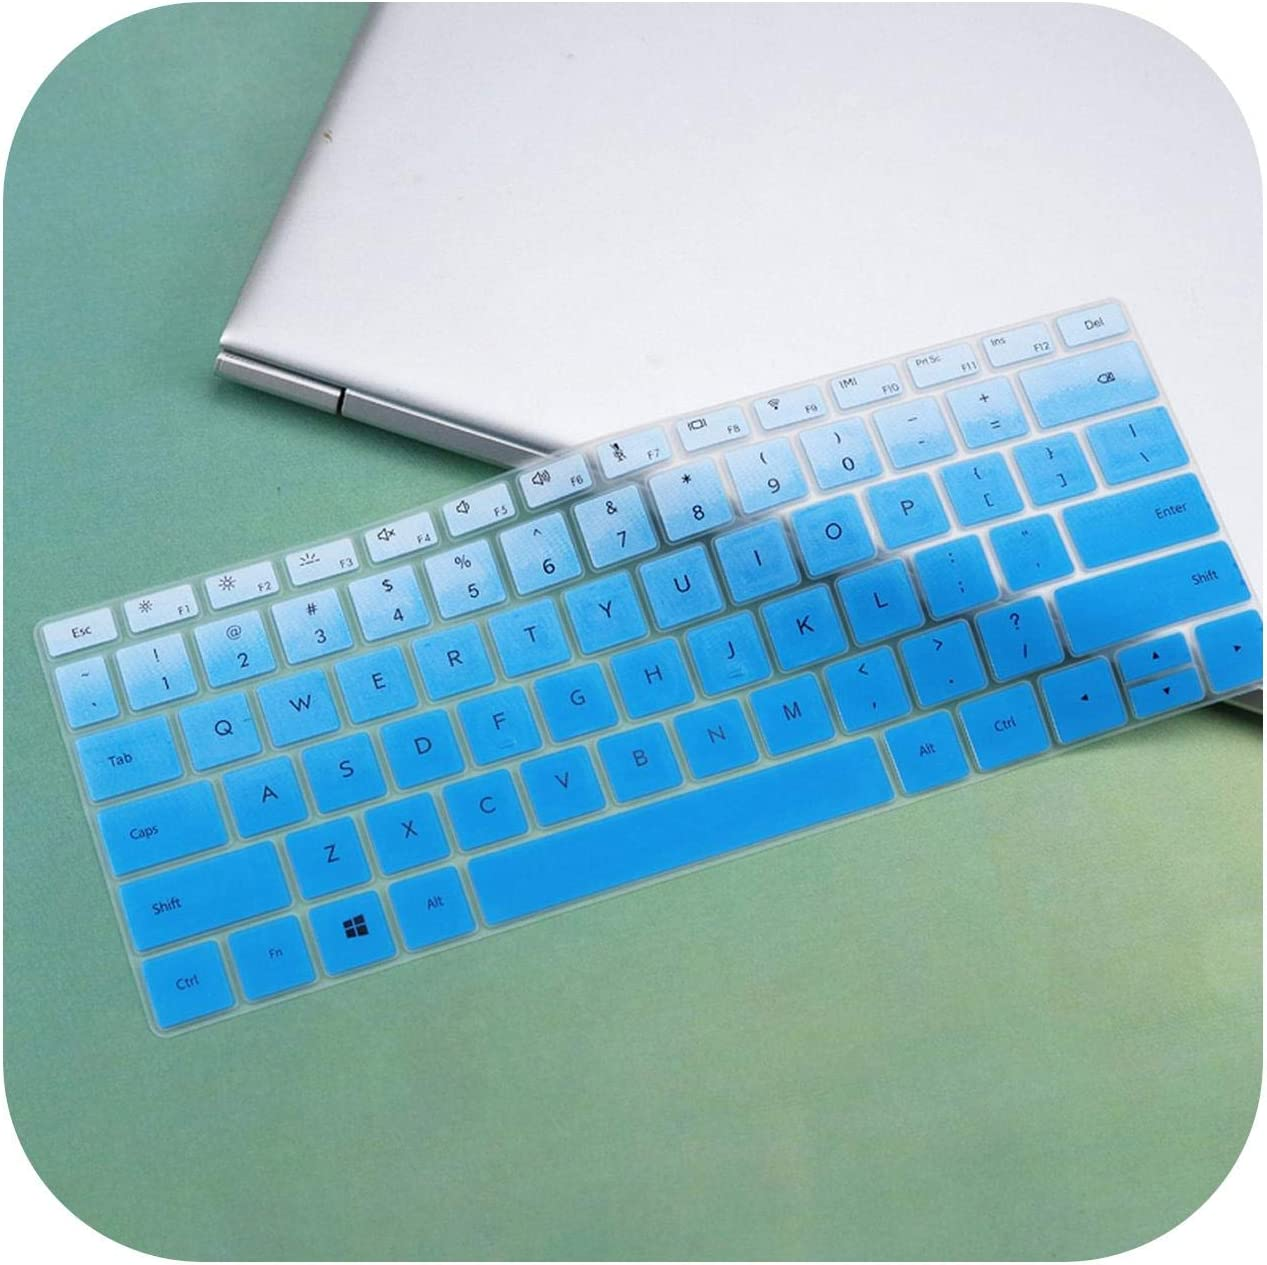 Notebook D14 14.0 Silicone Laptop Keyboard Cover Protector Skin-Whiteblue AMD Film Pour Clavier for Huawei Matebook D 14 Inch